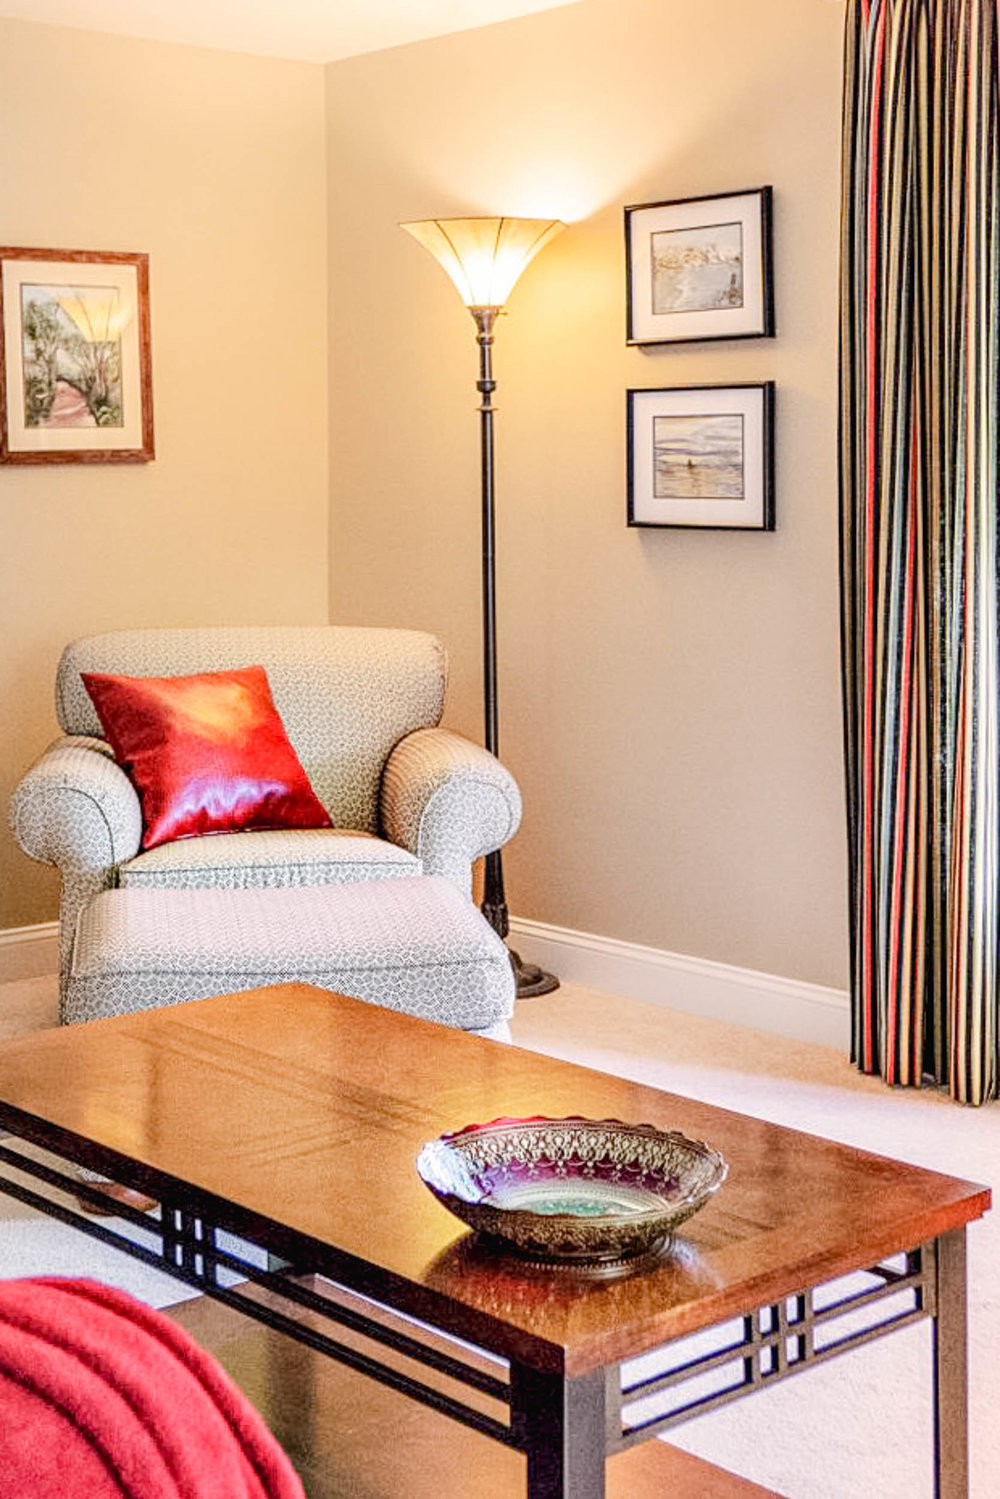 Existing Furniture was reused in this 55+ home.